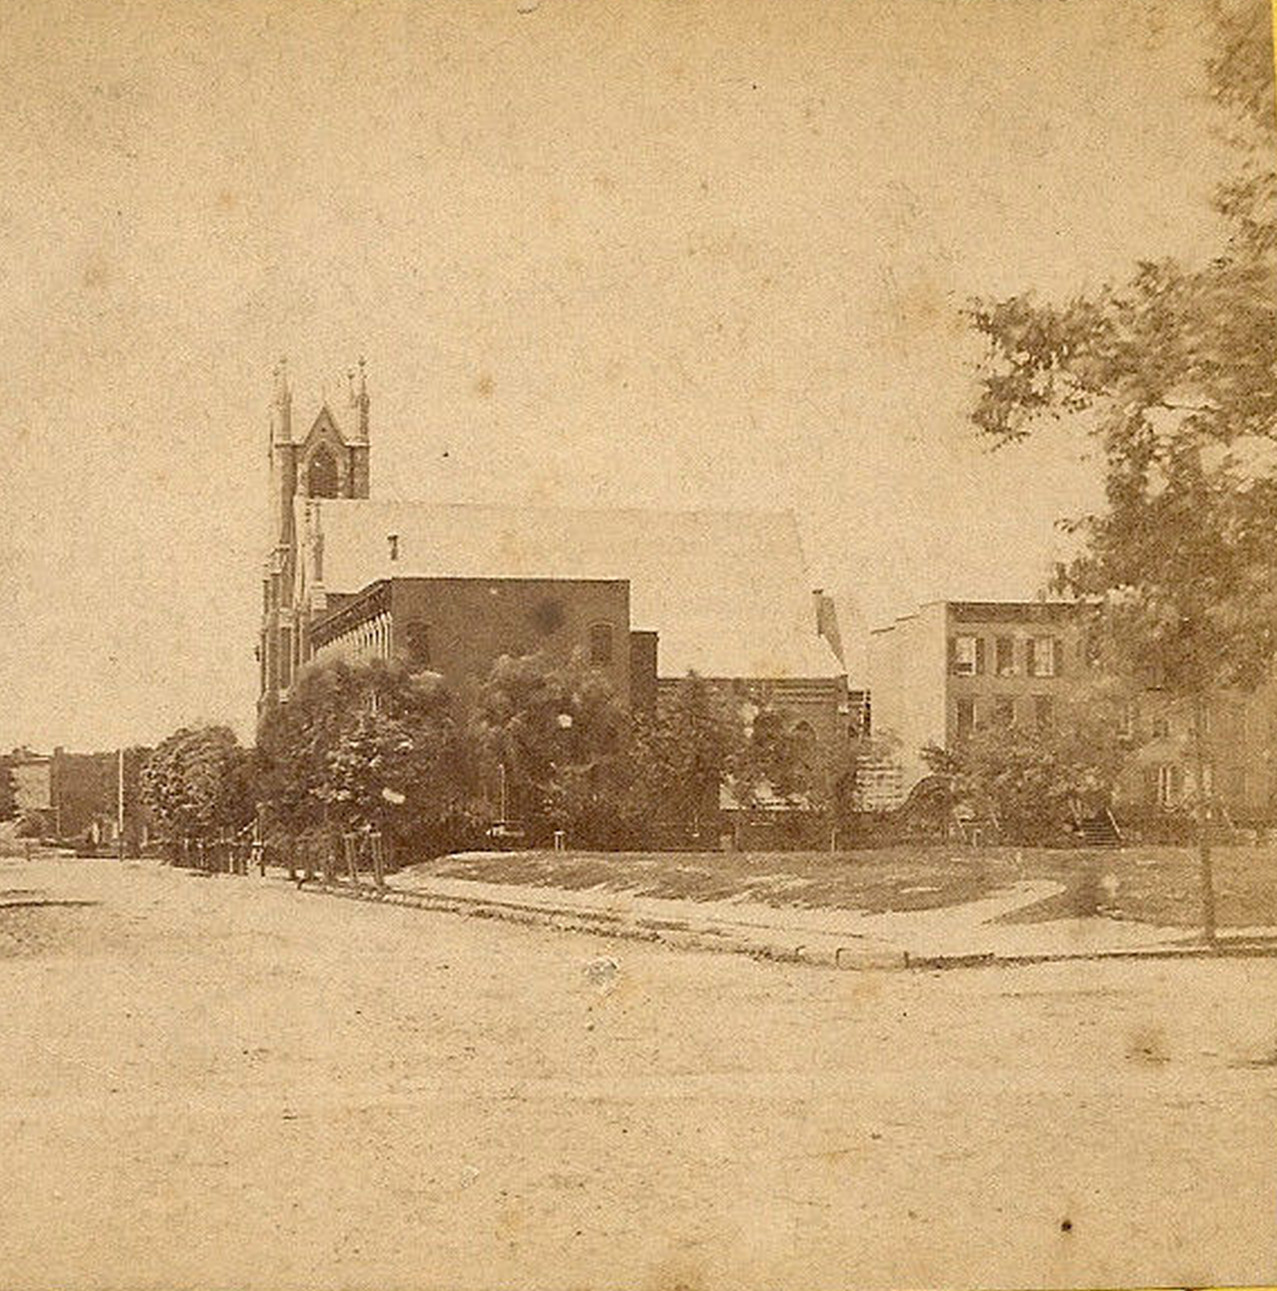 Old New York In Photos #104 - Mystery Church & Street In New York City